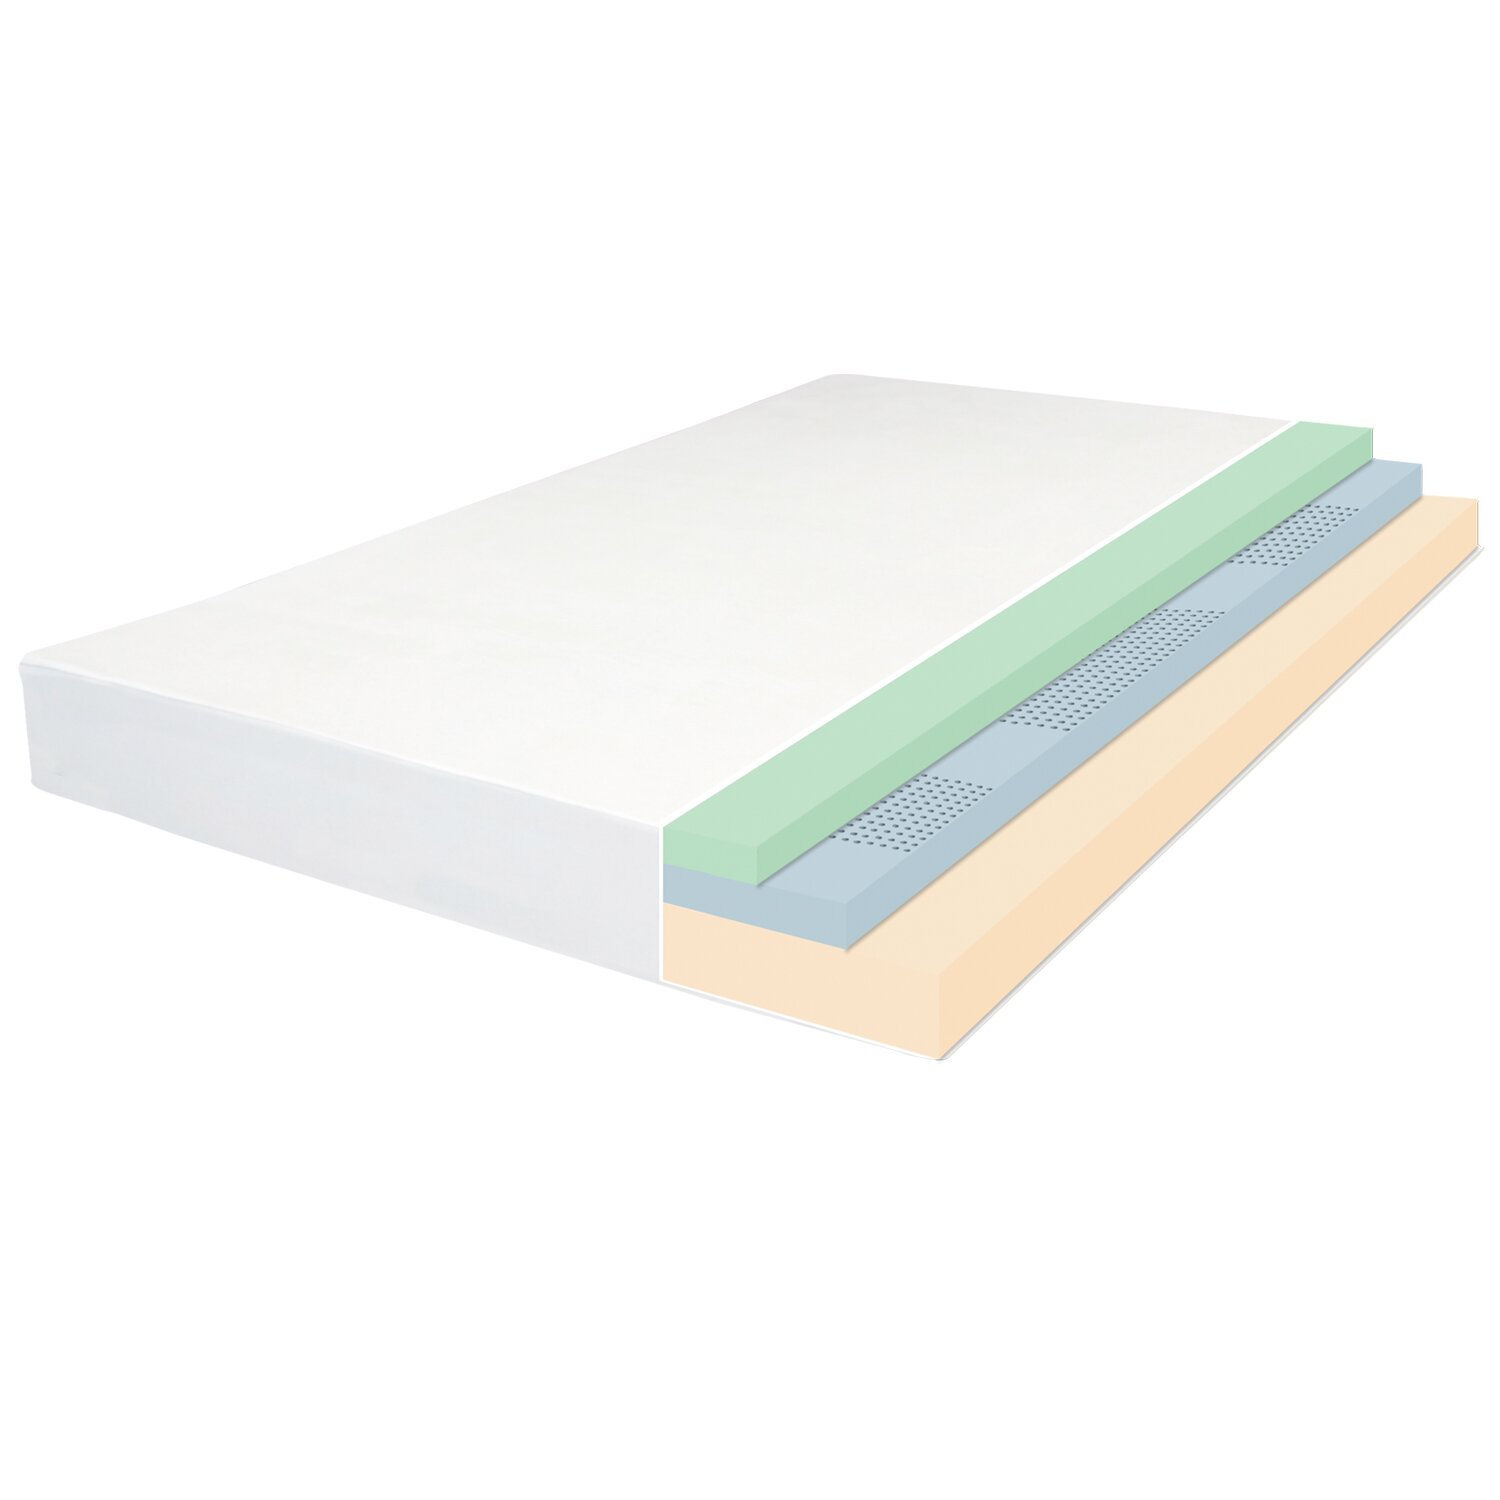 Orthotherapy 8 memory foam mattress and steel foundation set reviews wayfair Memory foam mattress set